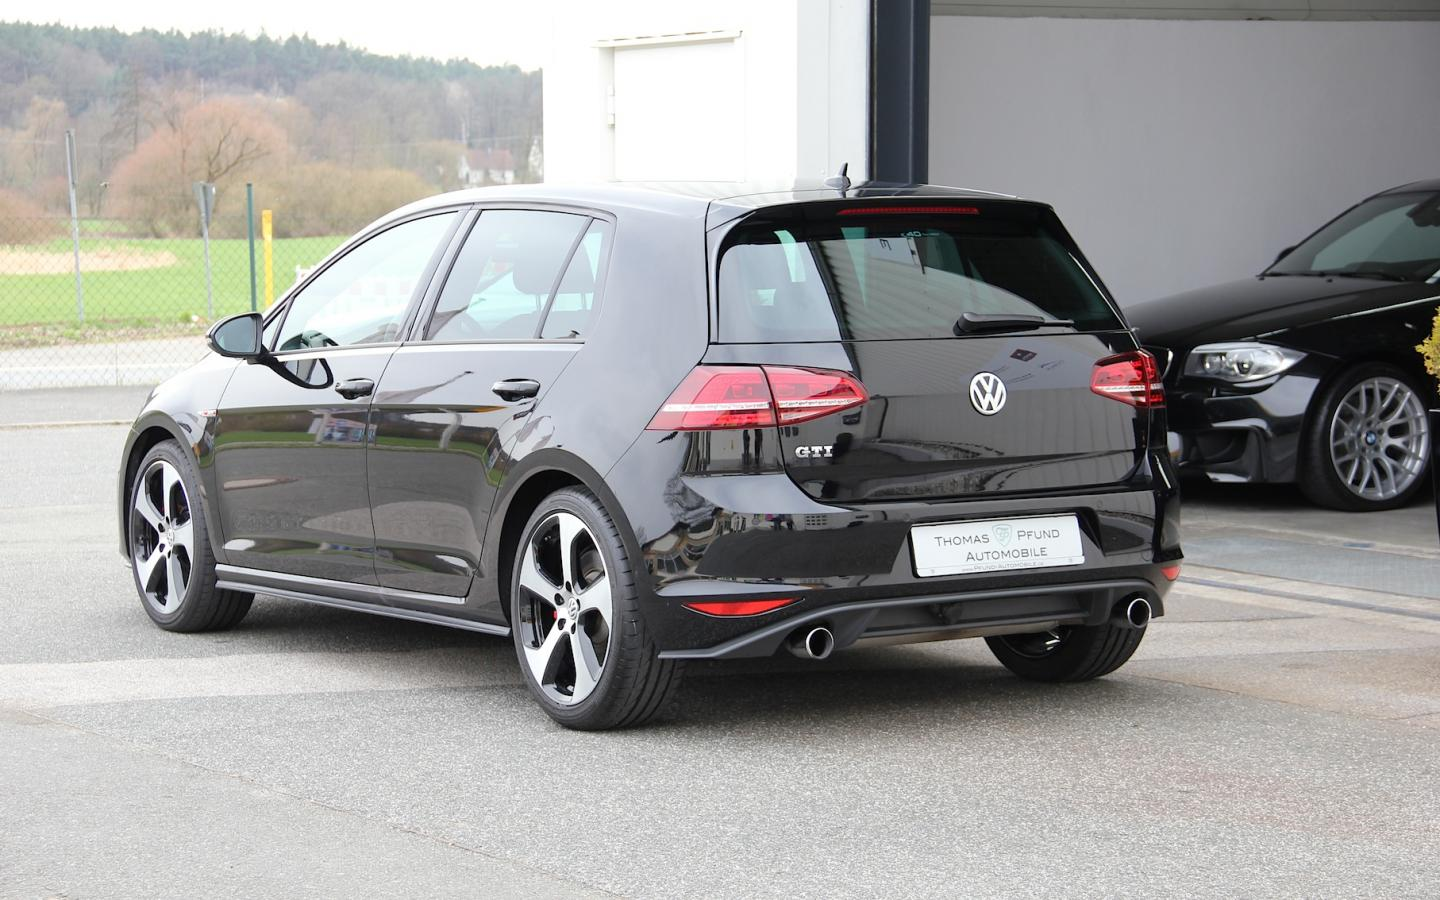 vw golf vii gti navi thomas pfund automobile. Black Bedroom Furniture Sets. Home Design Ideas